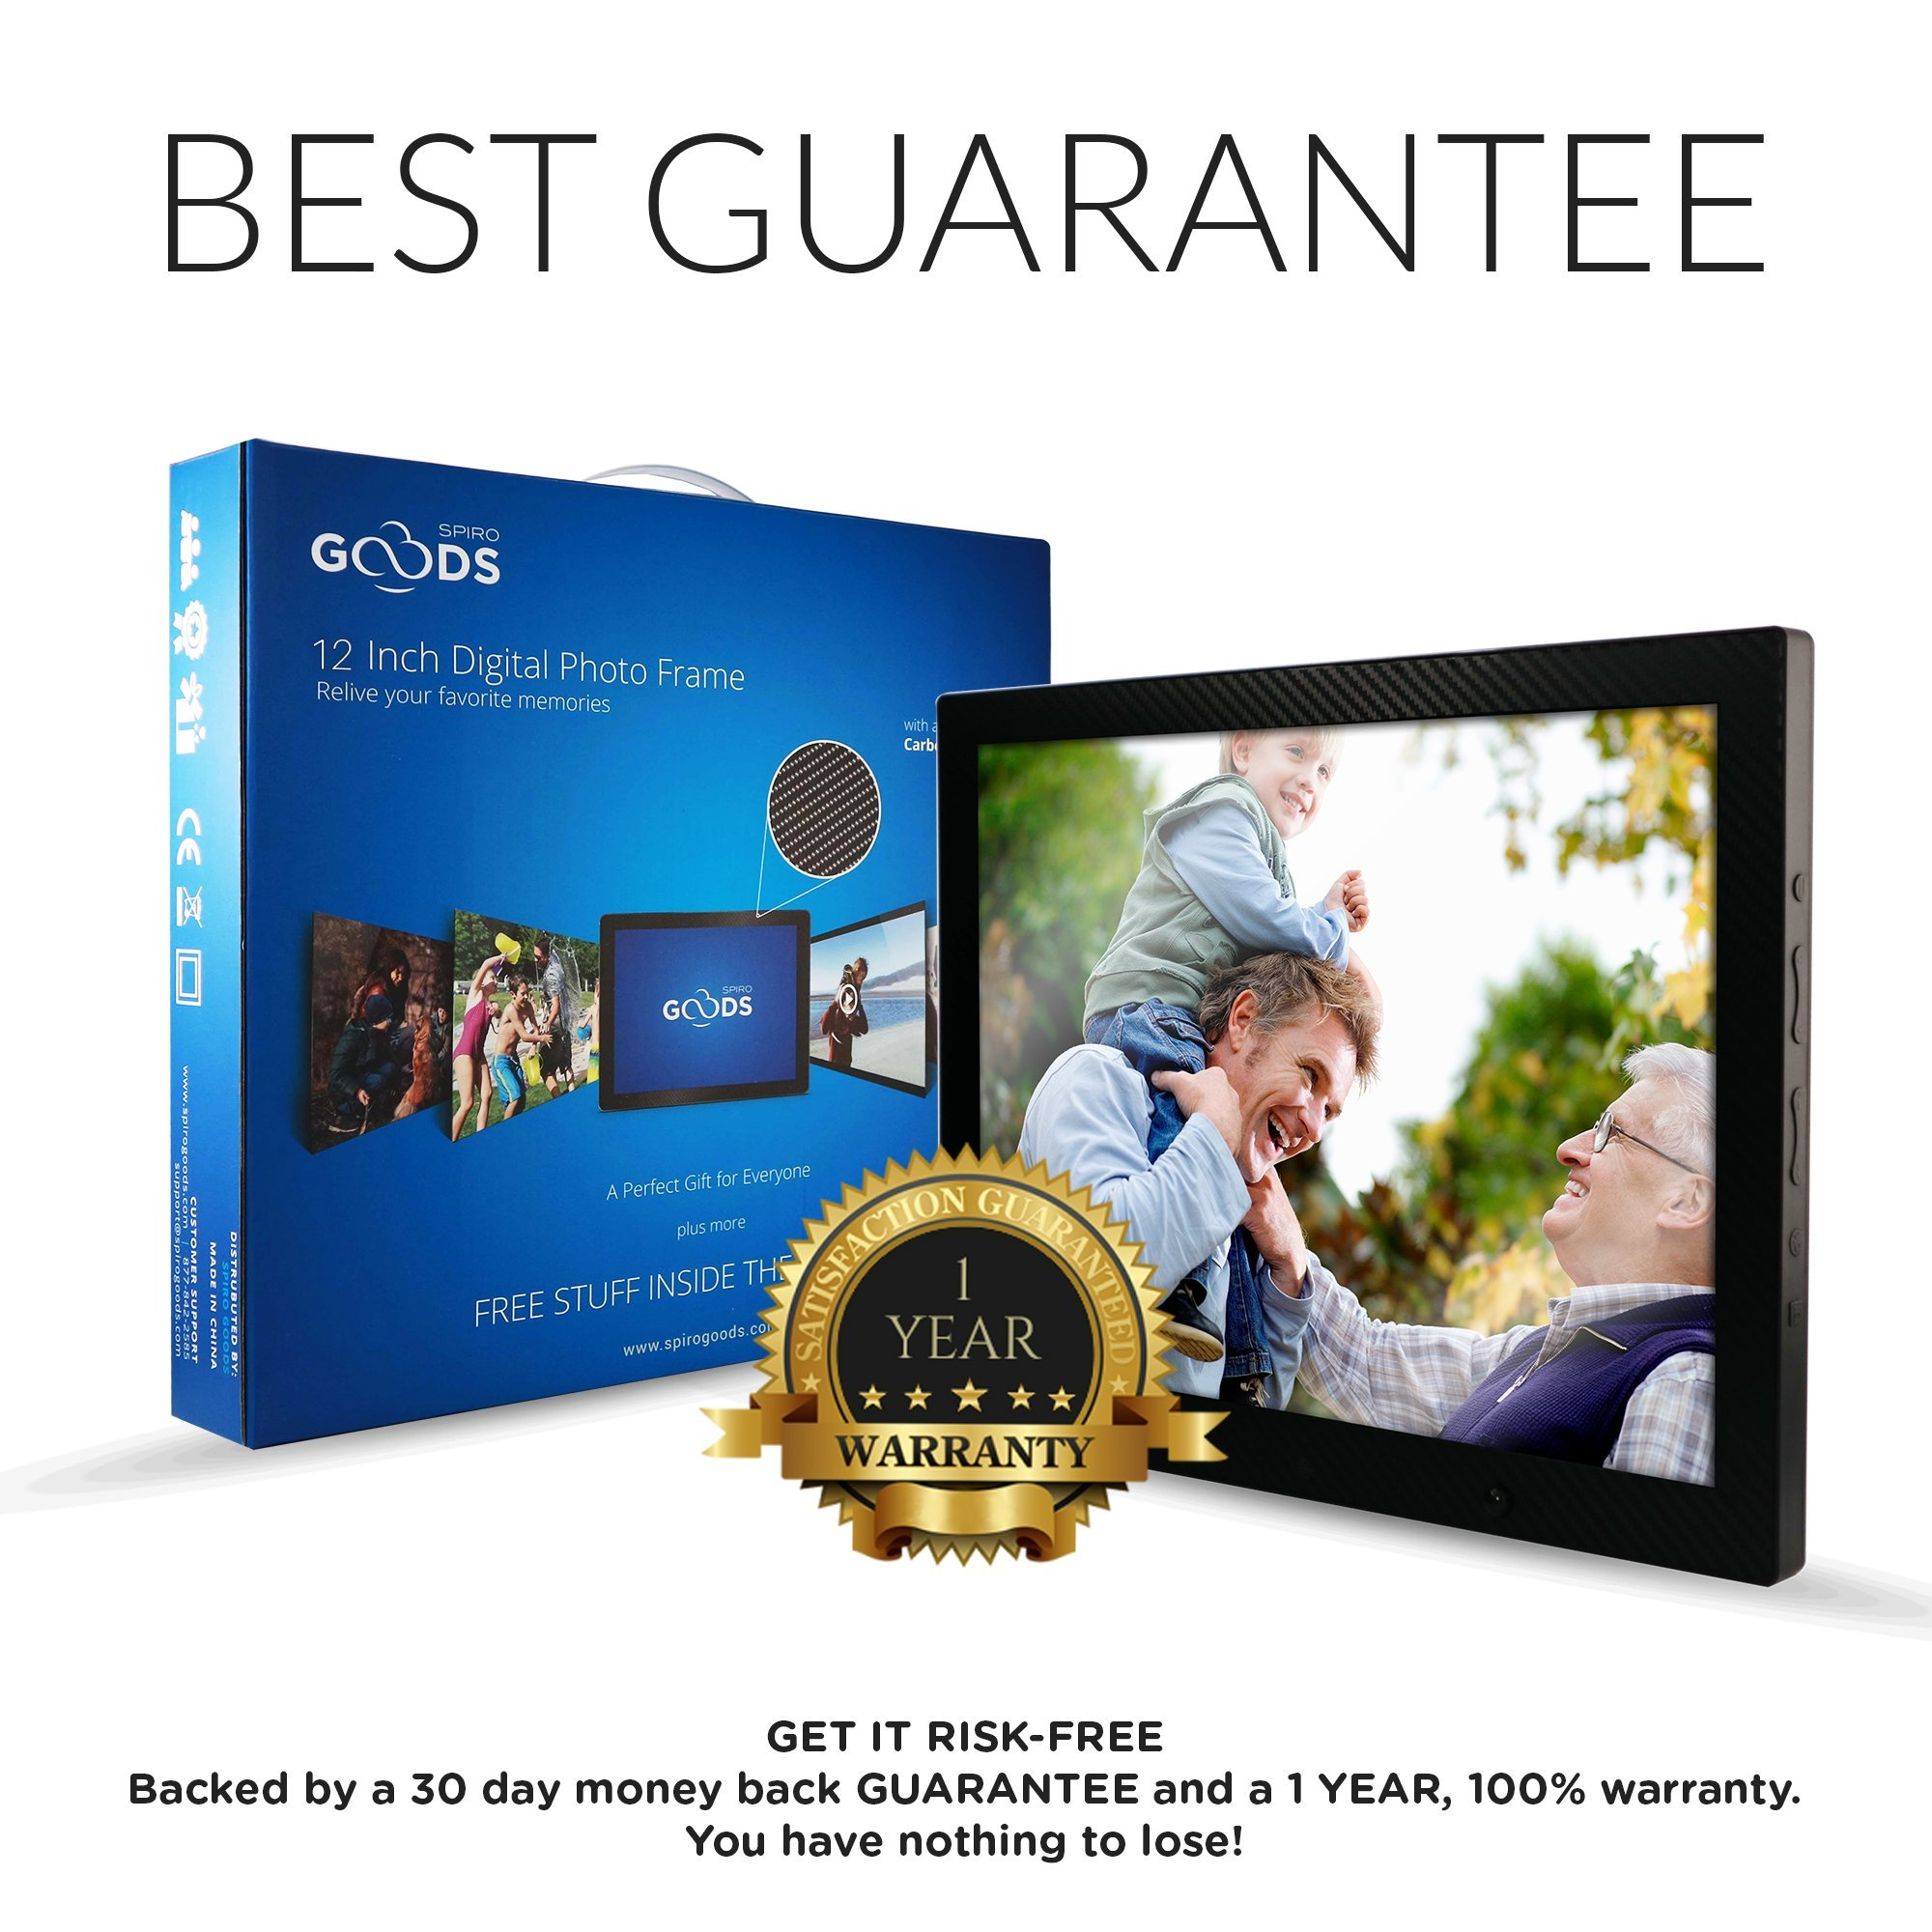 12 inch HD Digital Picture Frame Carbon Fiber - 1080p High Definition Electronic Photo Frame With Video, 16GB Memory, Motion Sensor, Built-In Speakers & Remote Control - (Black) by Spiro Goods (Image #7)